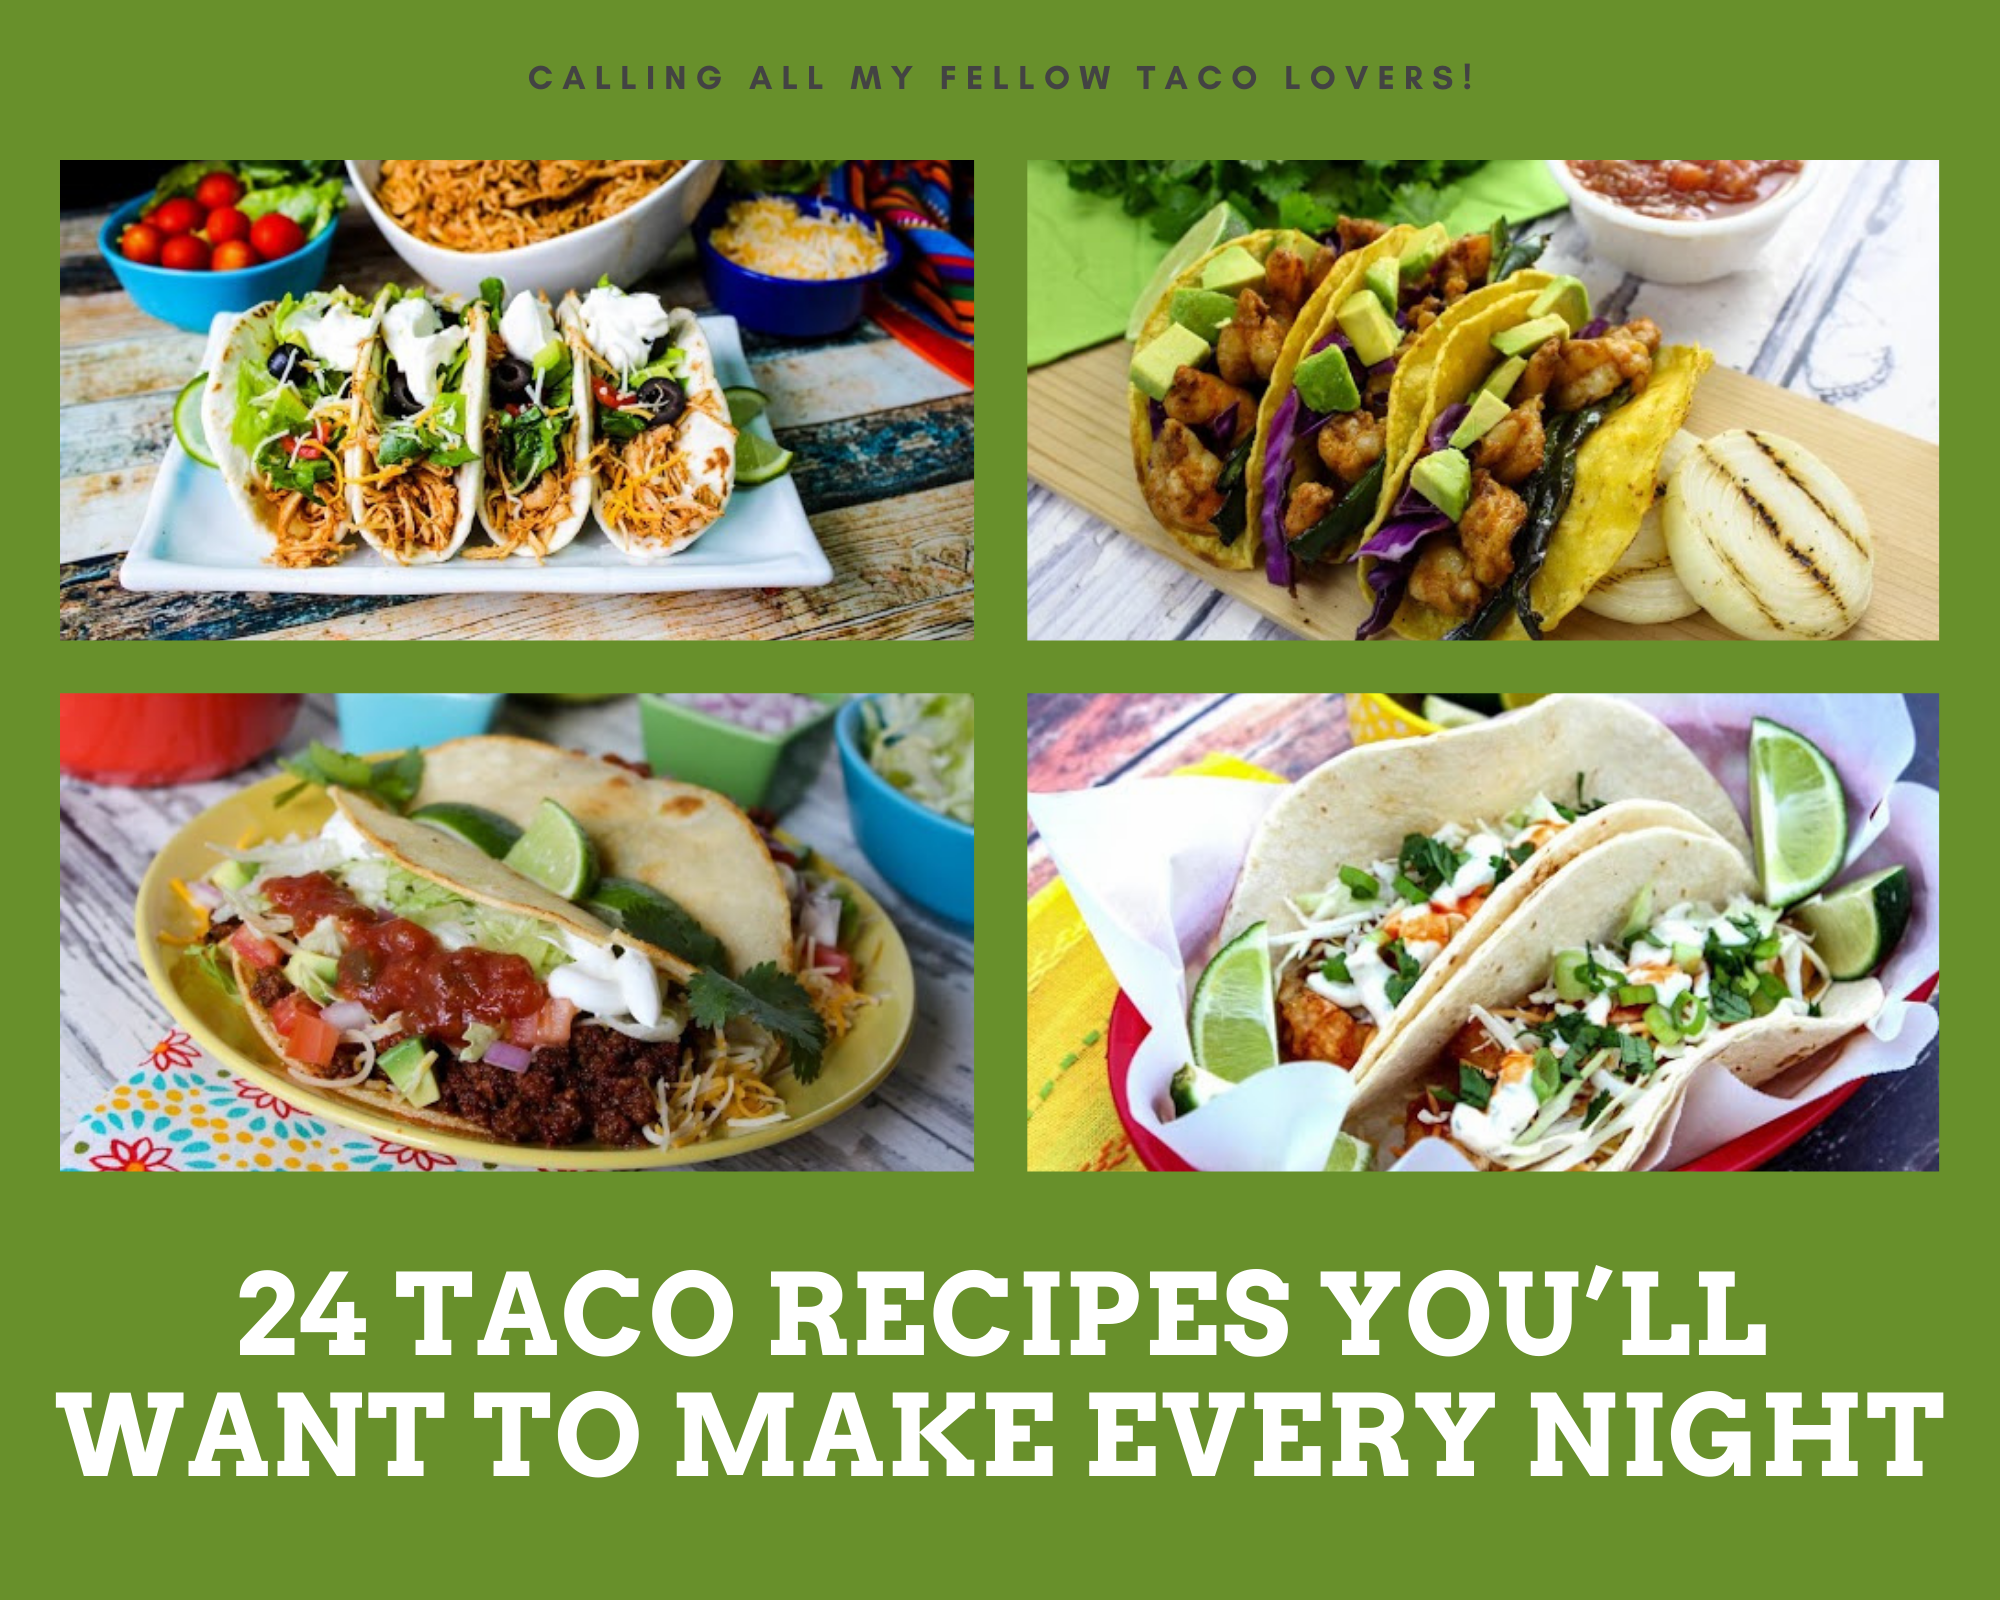 slow cooker chicken tacos, beef tacos, shrimp tacos and fish tacos